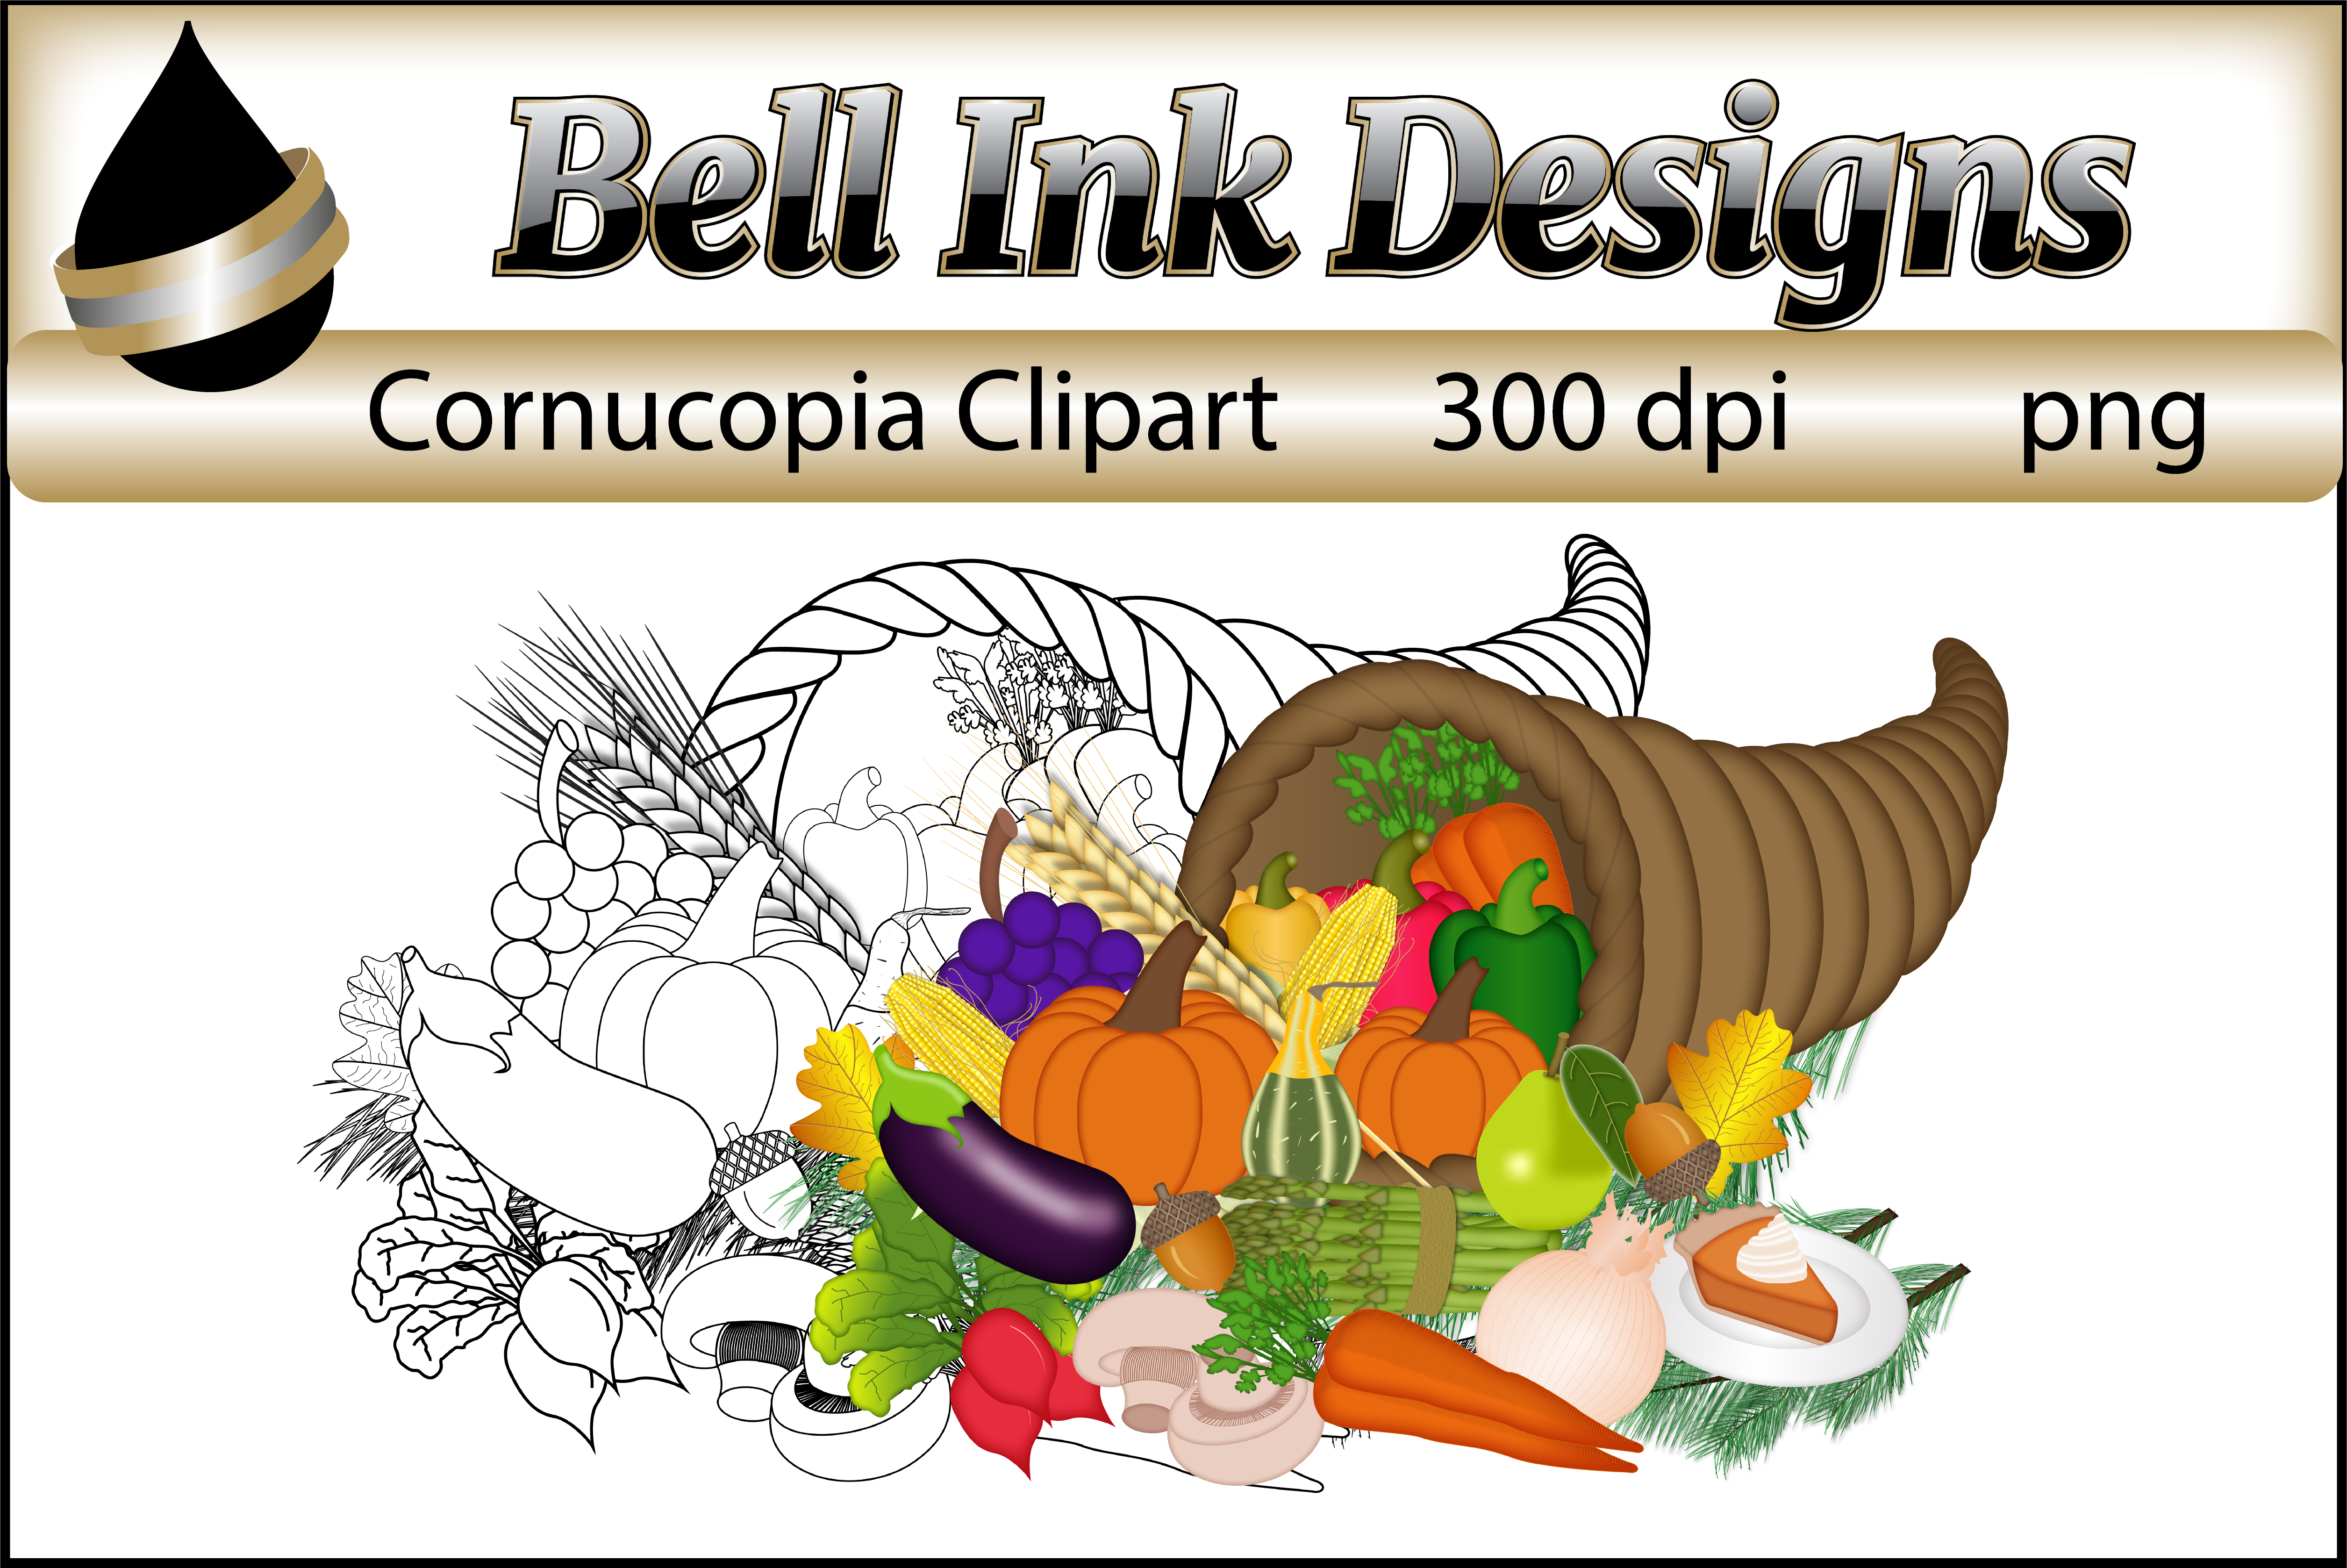 Cornucopia Clipart From Bell Ink Designs